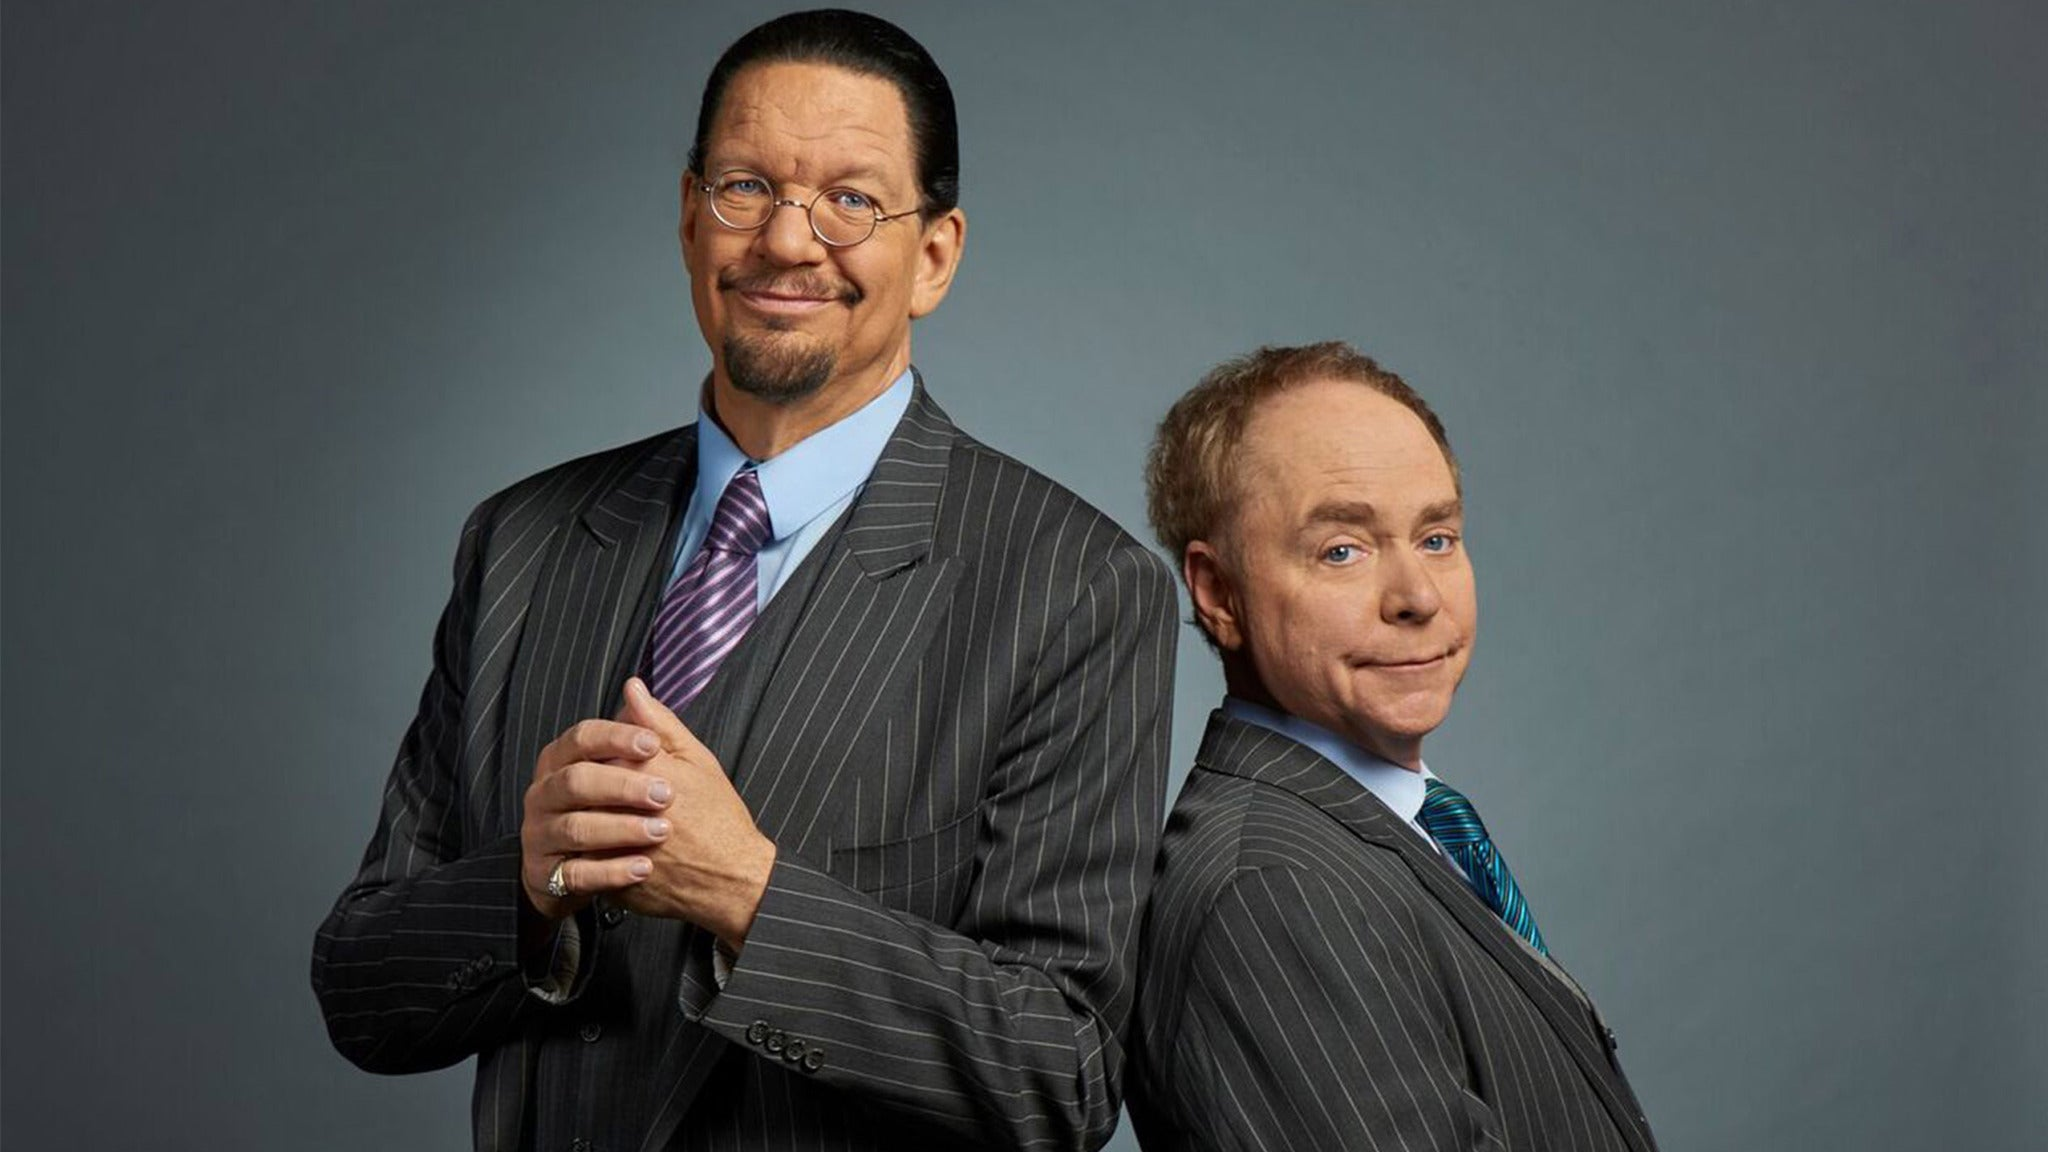 Penn & Teller at Hard Rock Live at The Event Center